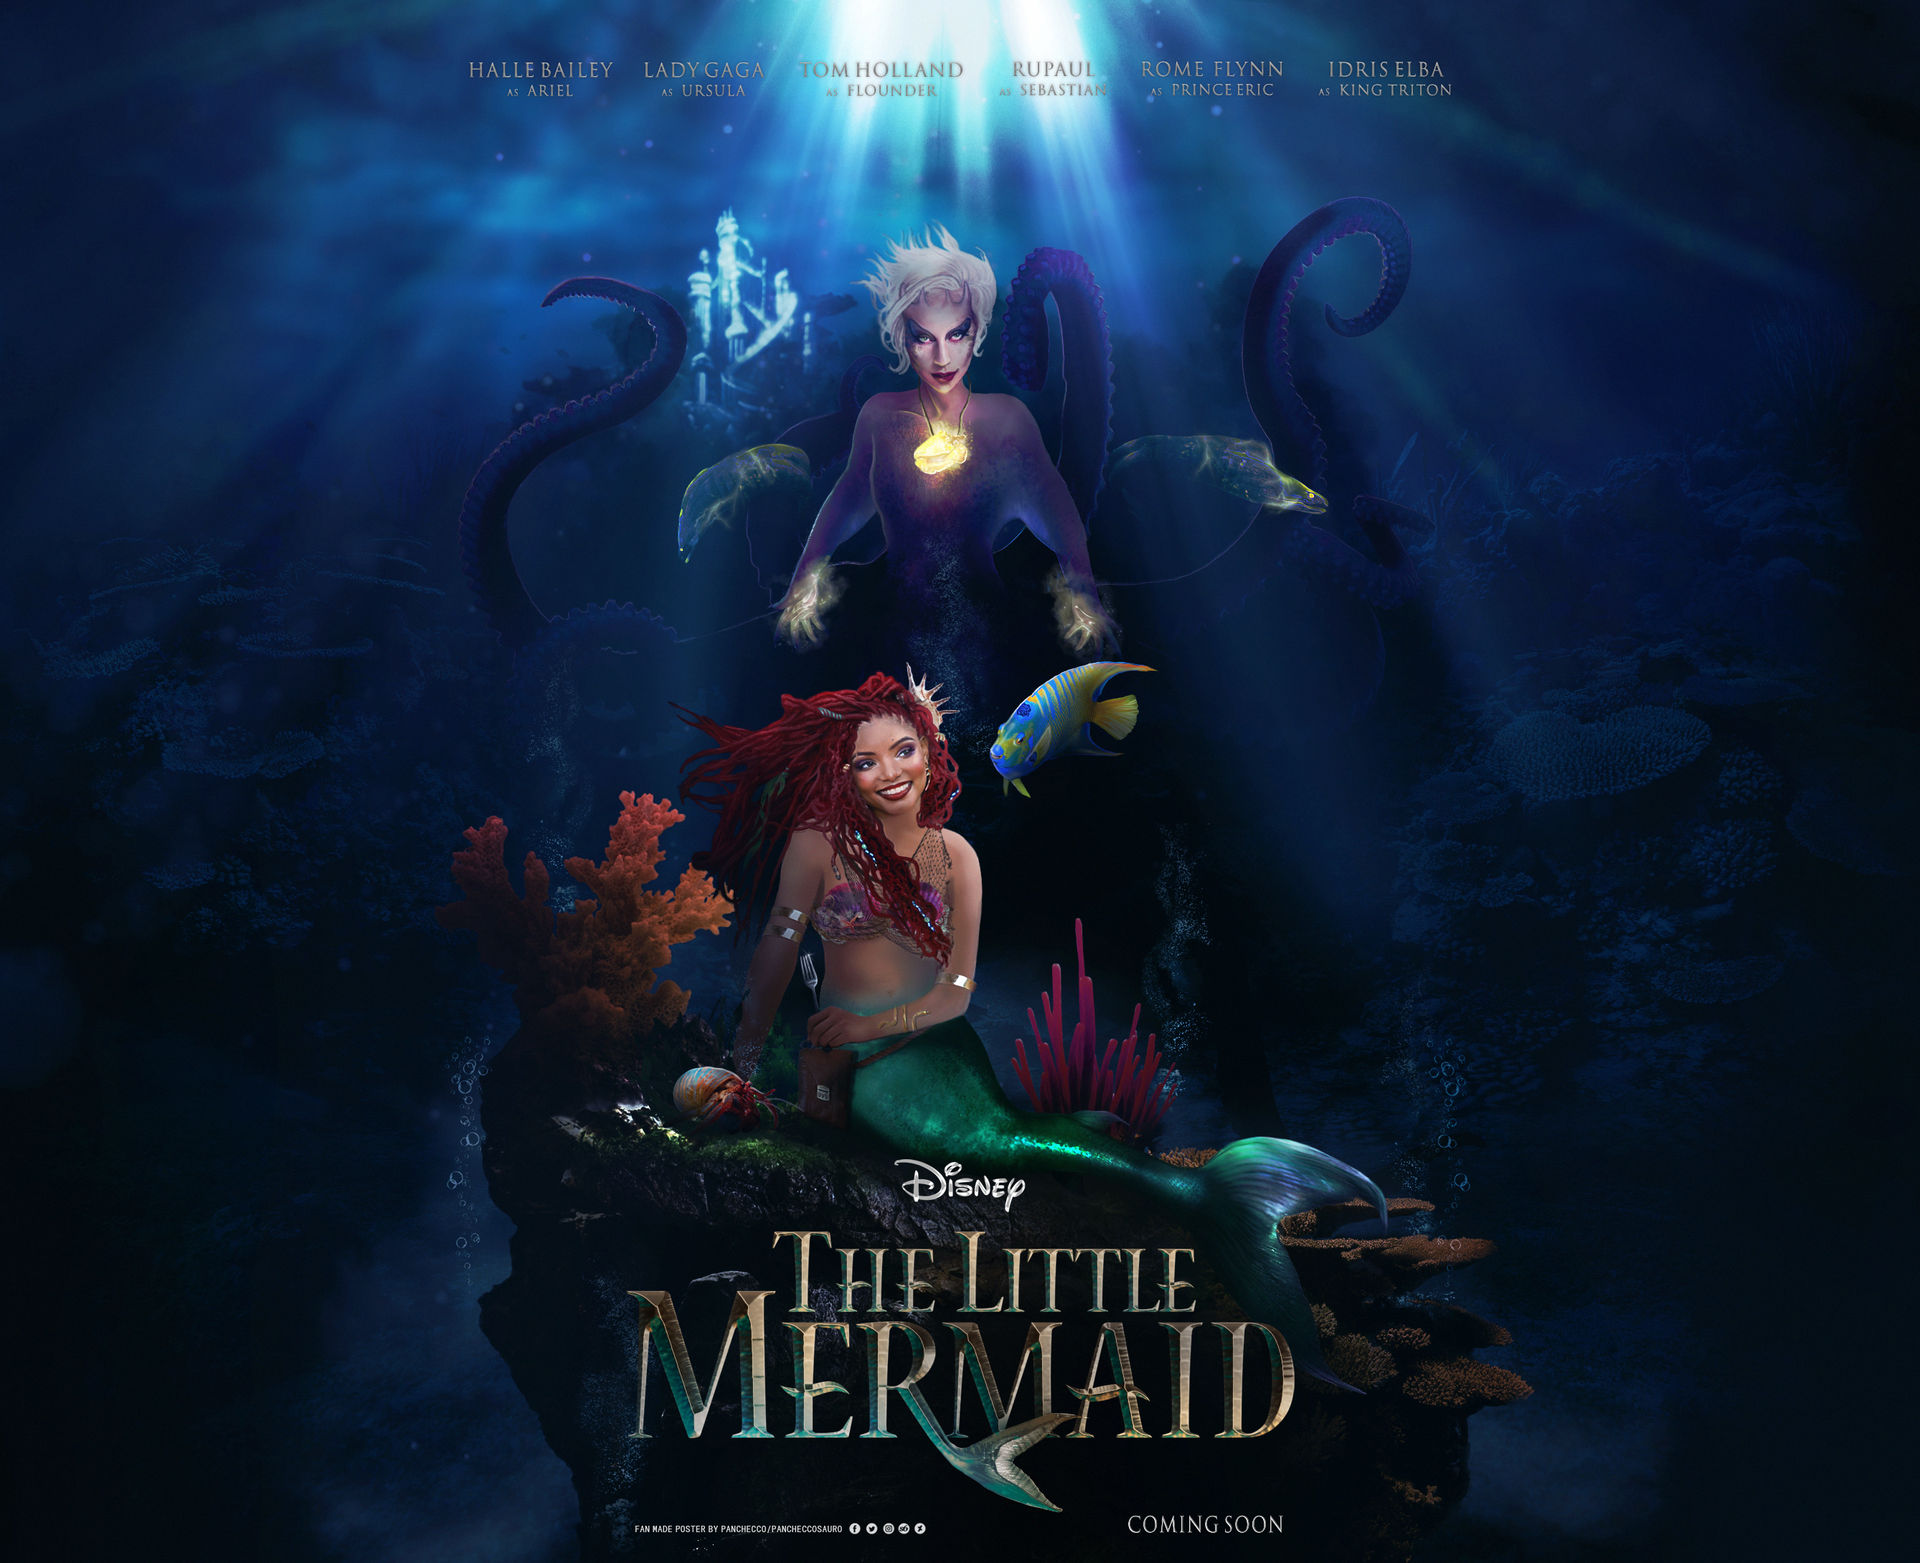 The Little Mermaid Wallpaper Version Download By Panchecco On